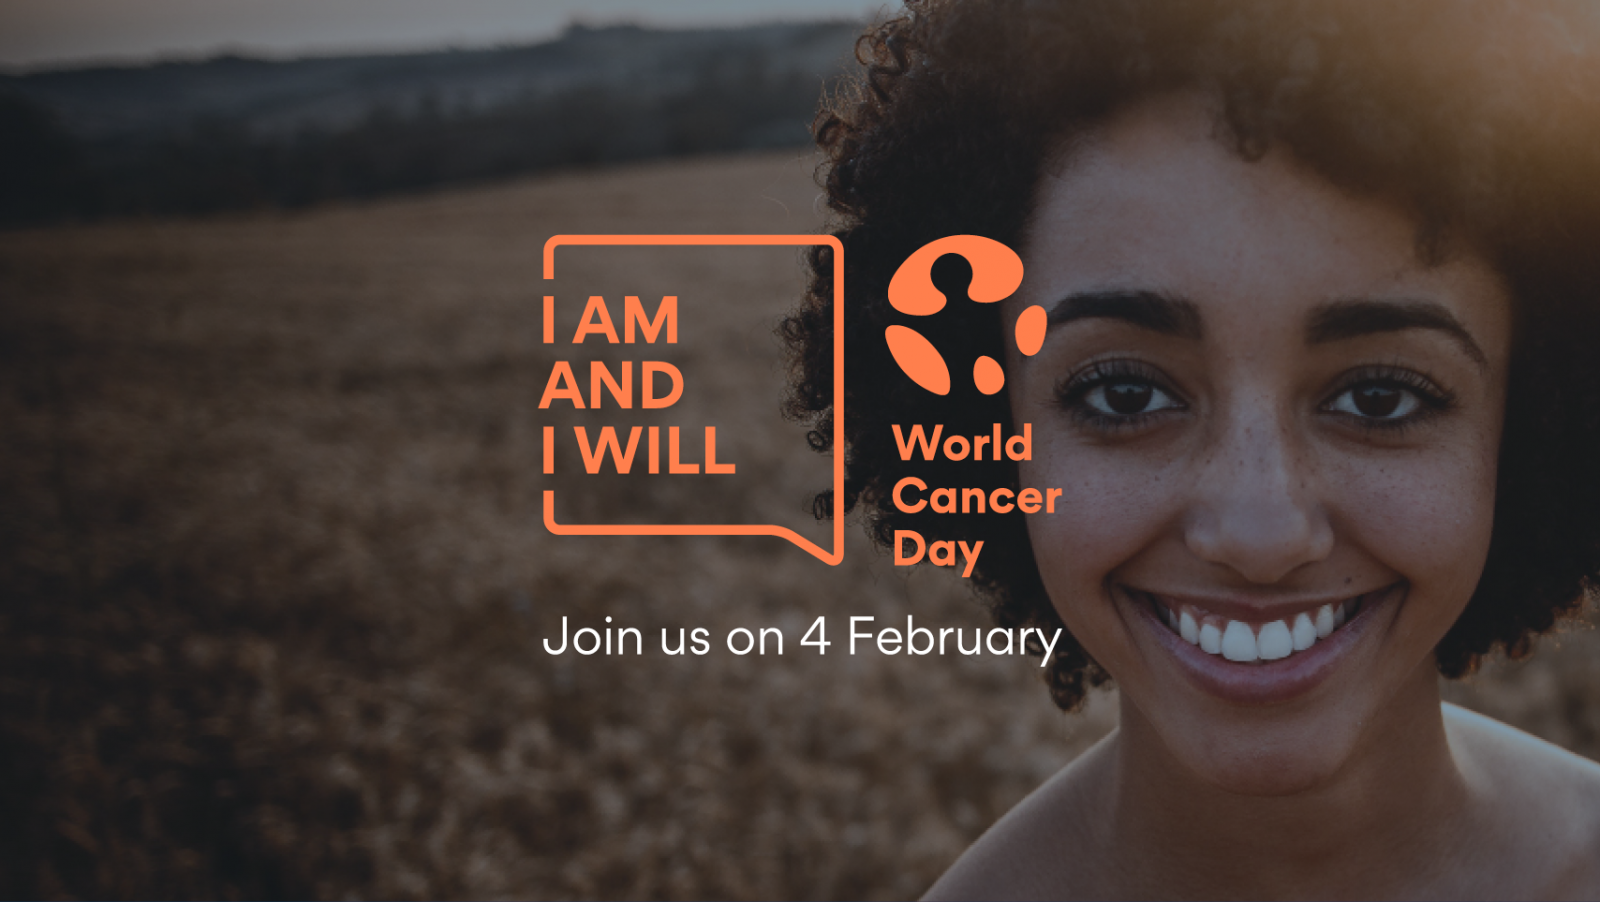 World Cancer Day 2019 Campaign